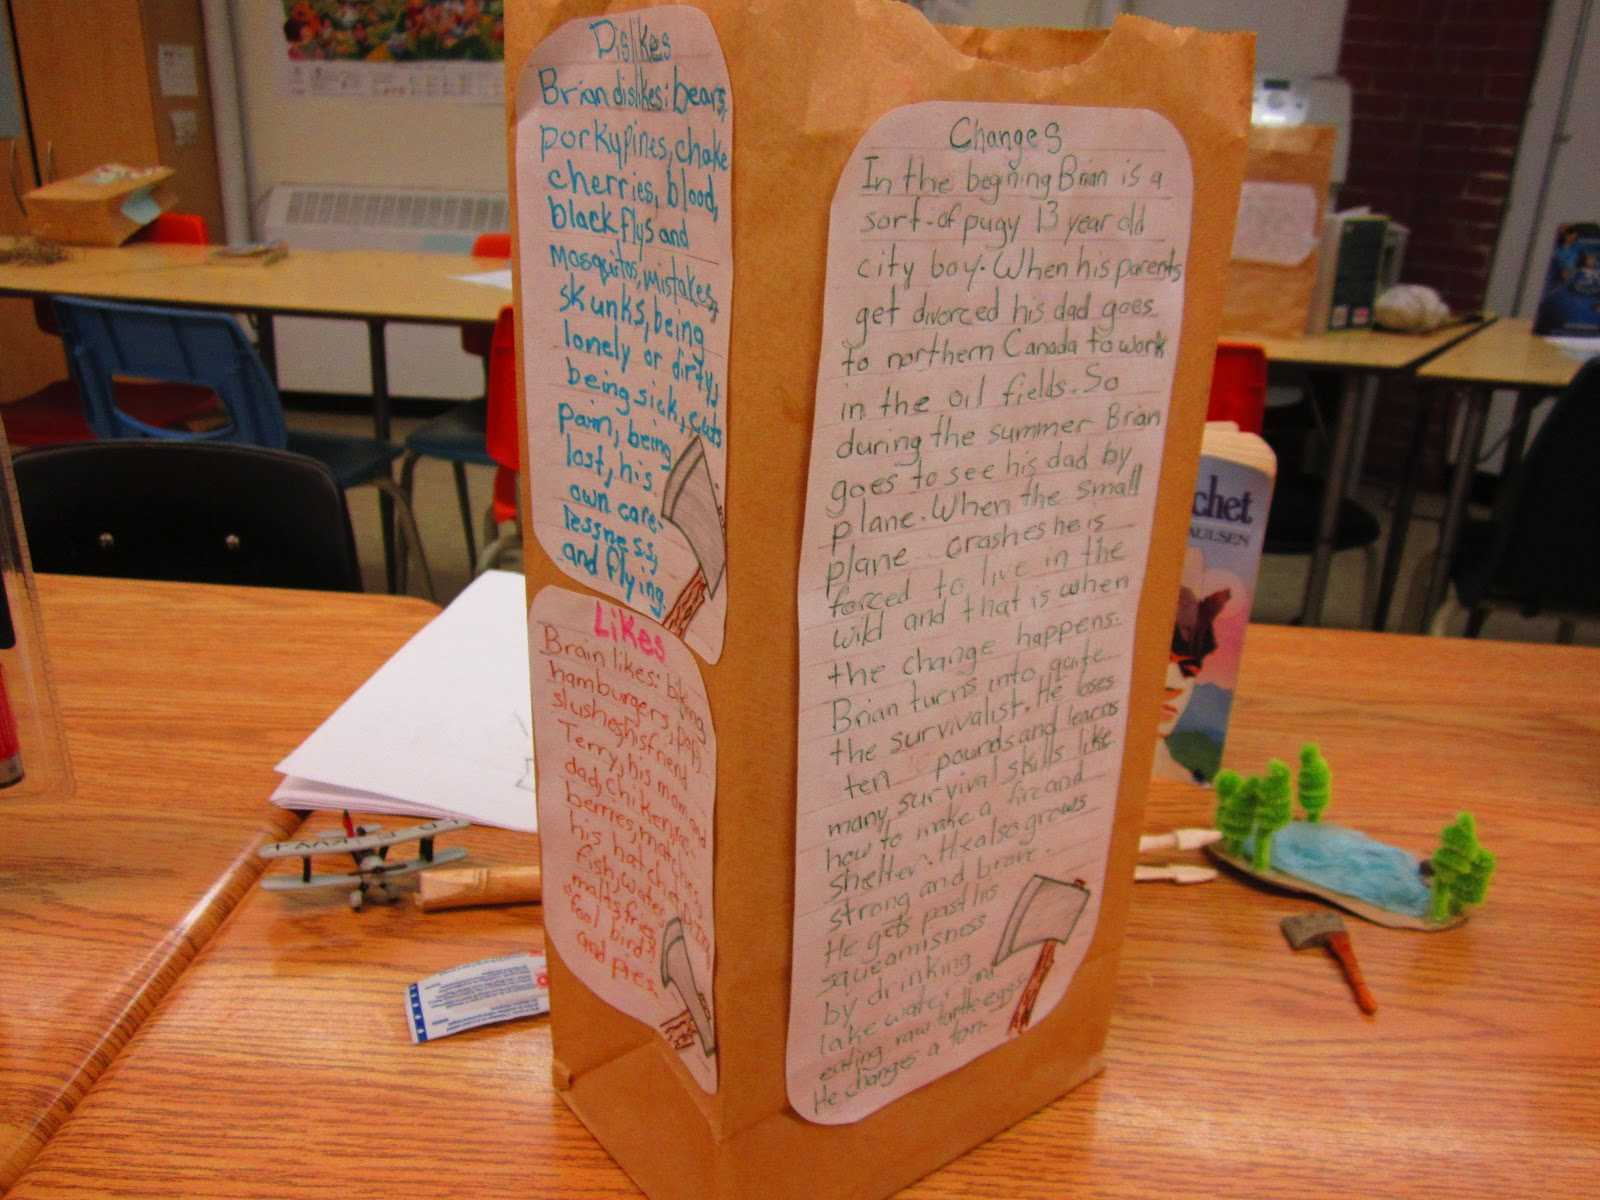 Paper Bag Characterization   Runde's Room Within Paper Bag Book Report Template